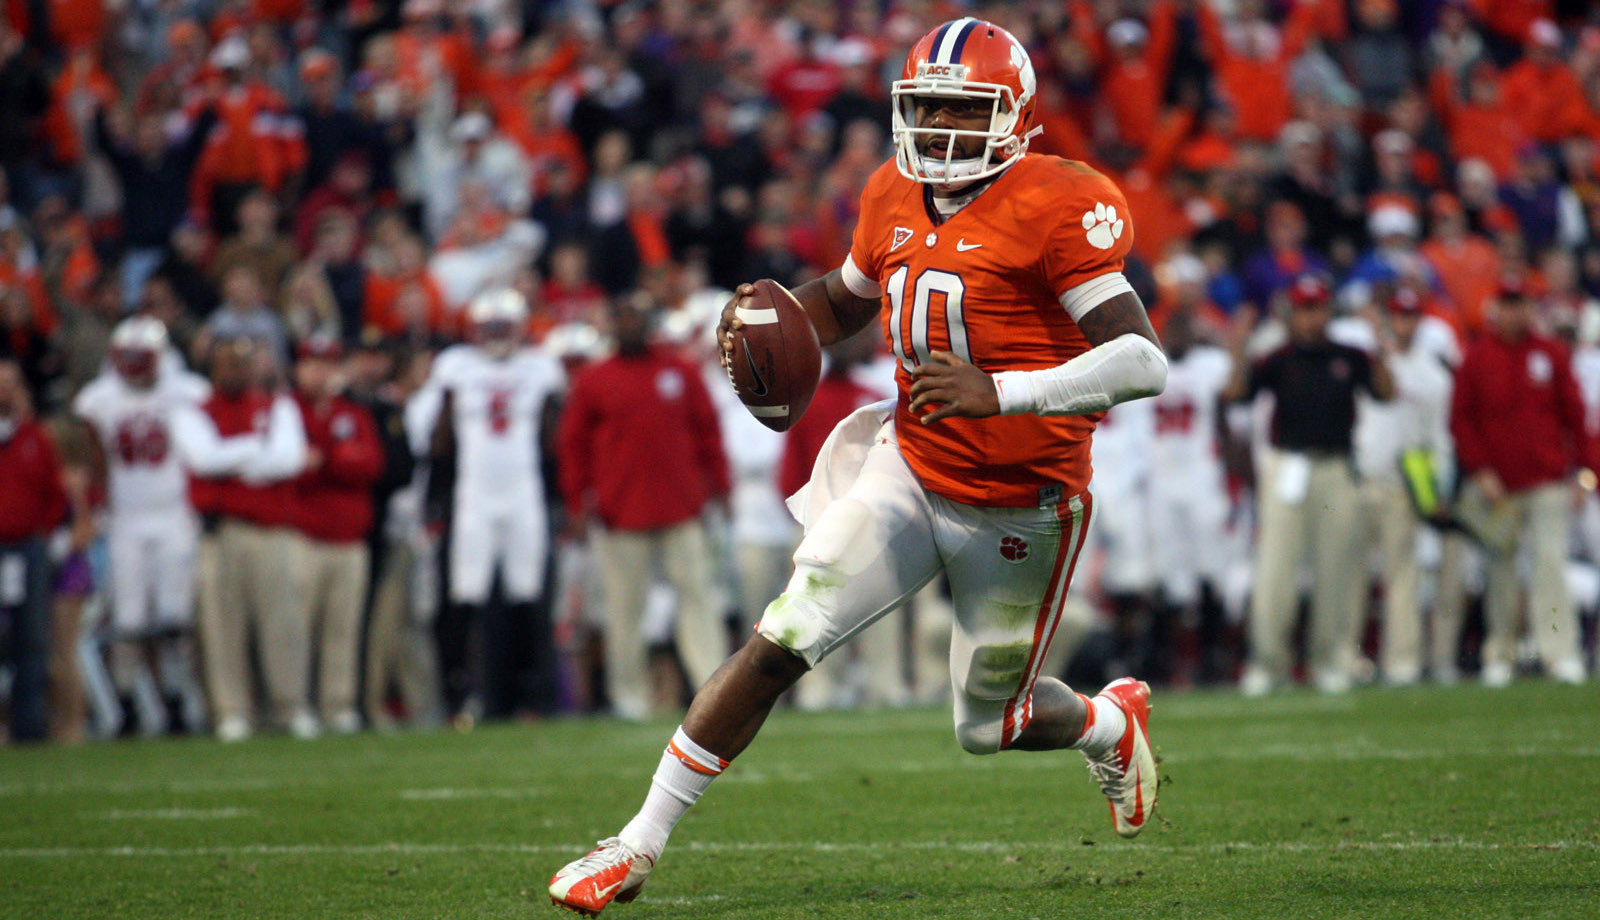 Six Clemson Offensive Players Named First-Team All-ACC